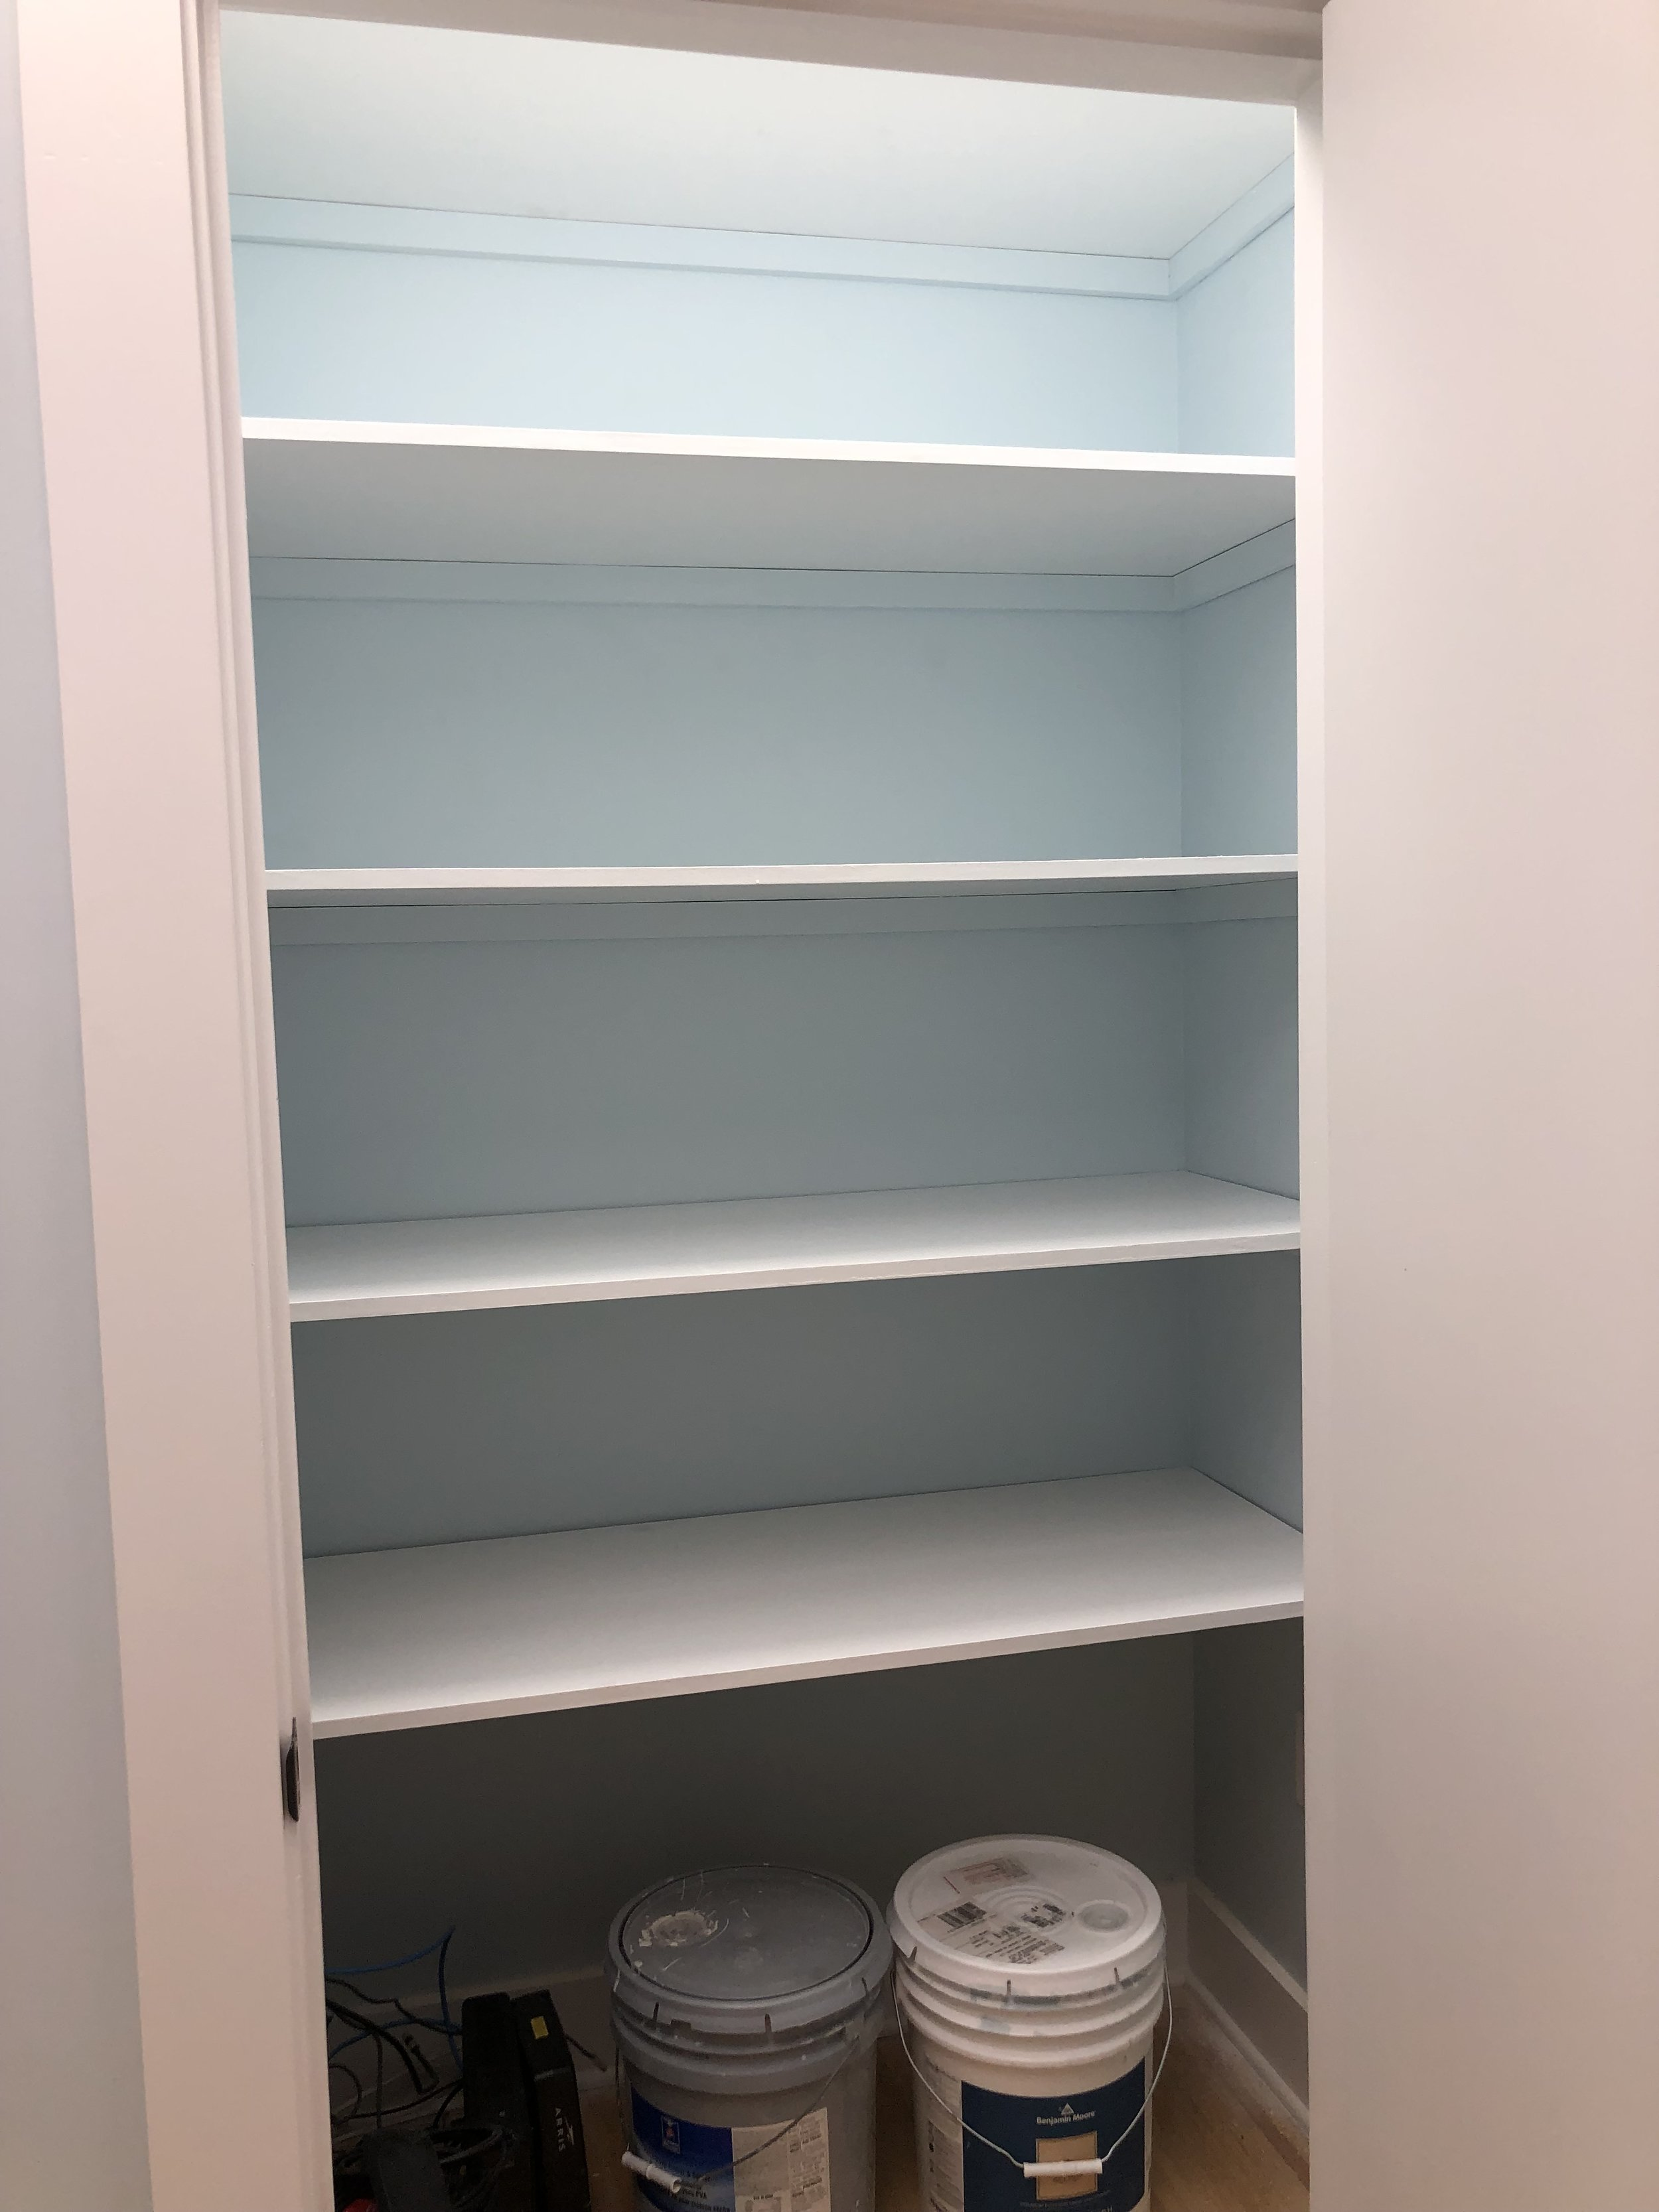 Supply closet nearing completion with shelves installed.